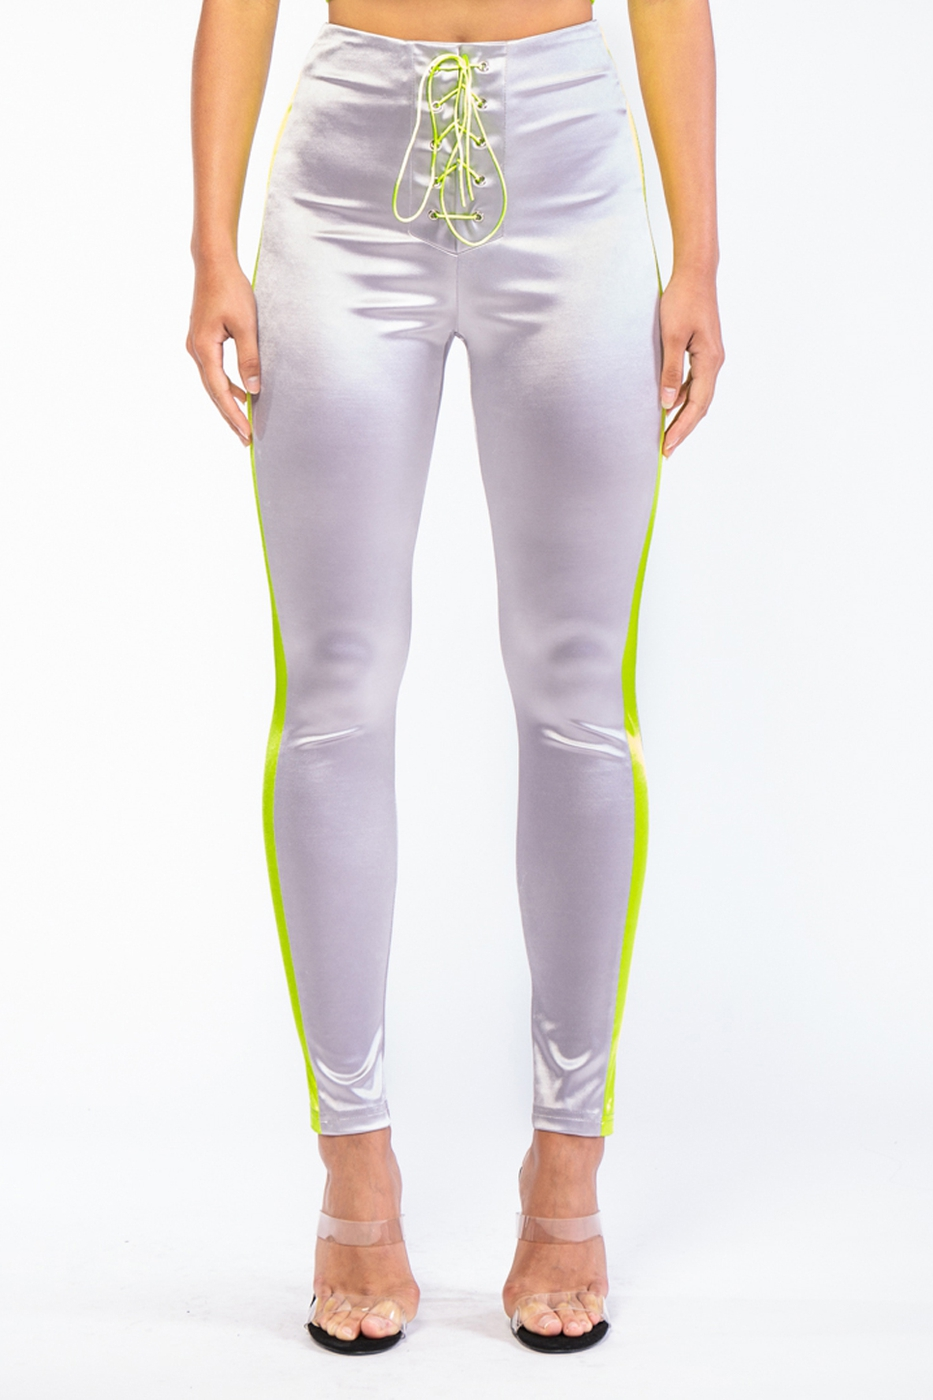 SATIN LACE UP PANTS - orangeshine.com